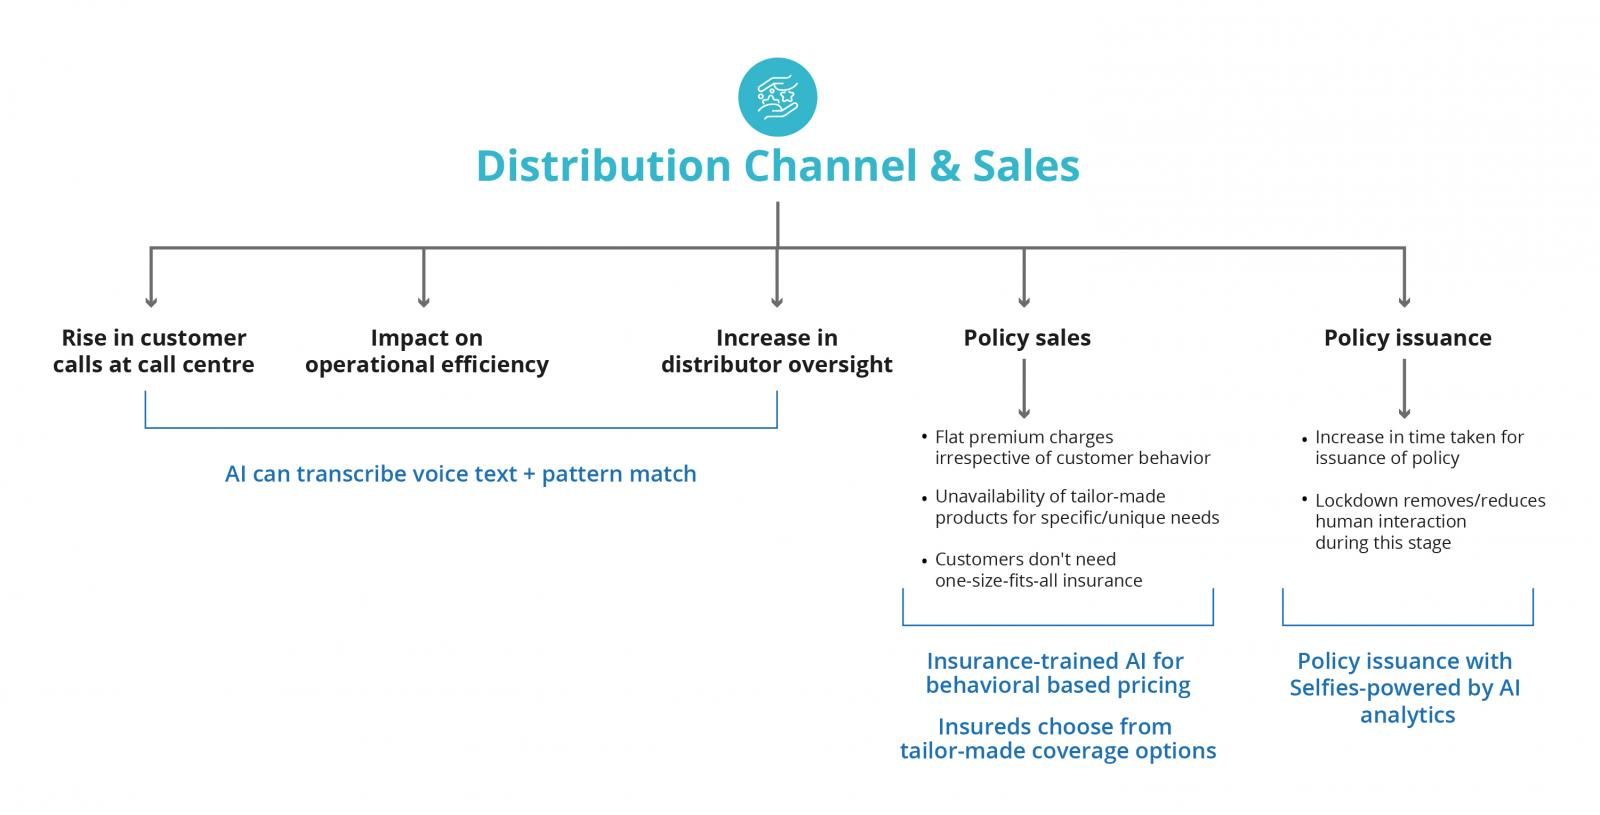 insurance lifecycle mapped to distribution and sales